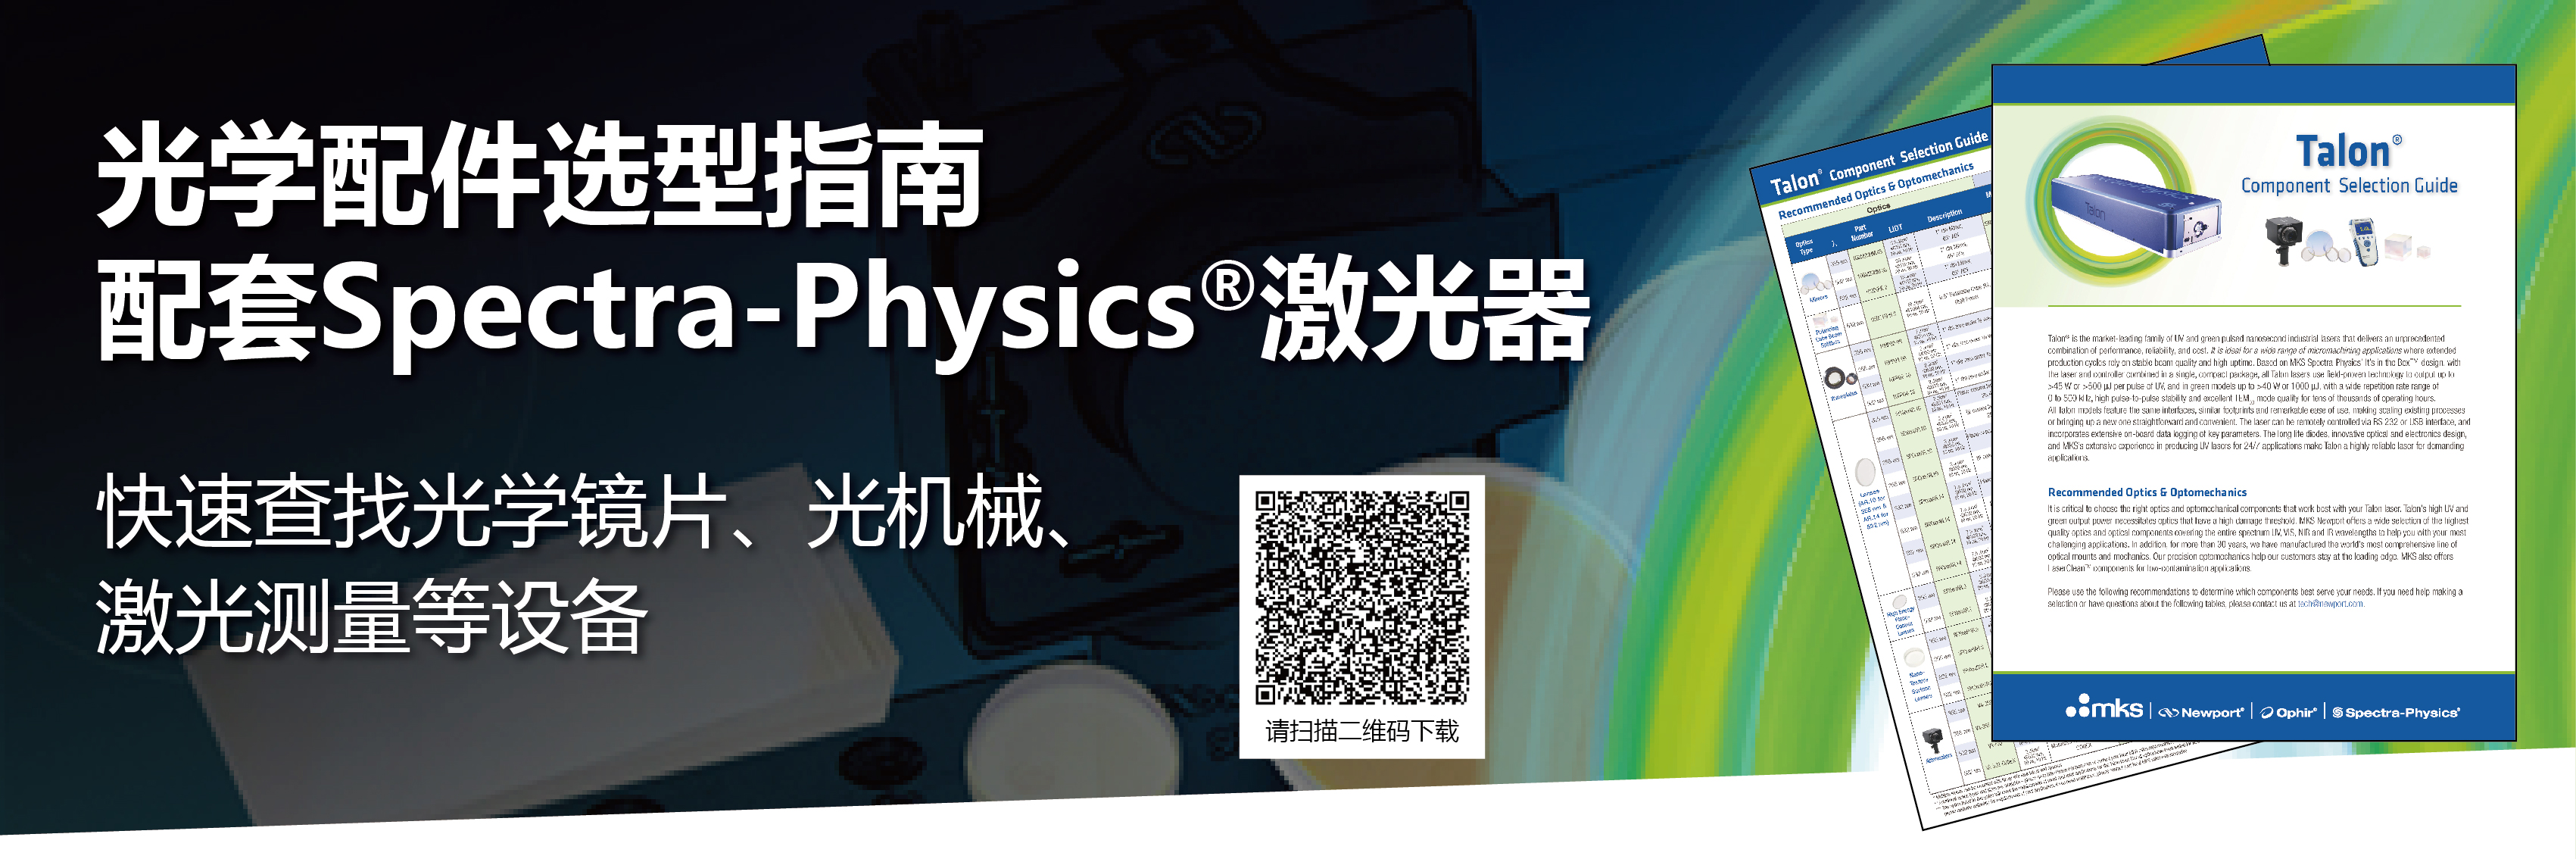 Newport&Spectra-Physics——MKS万机仪器集团